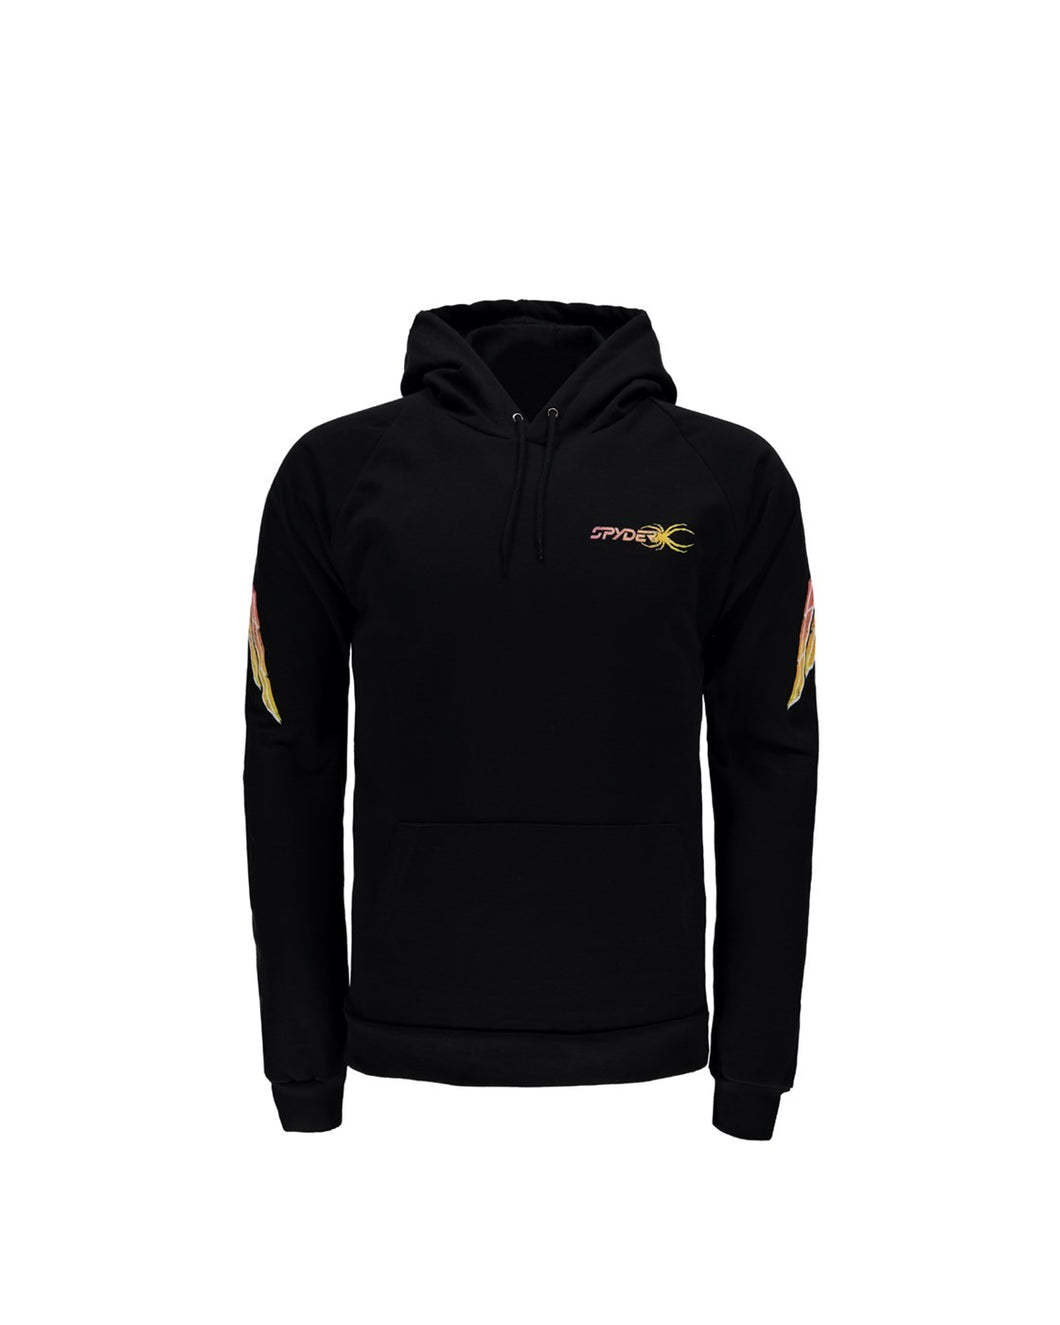 Men's World Wide Hoody